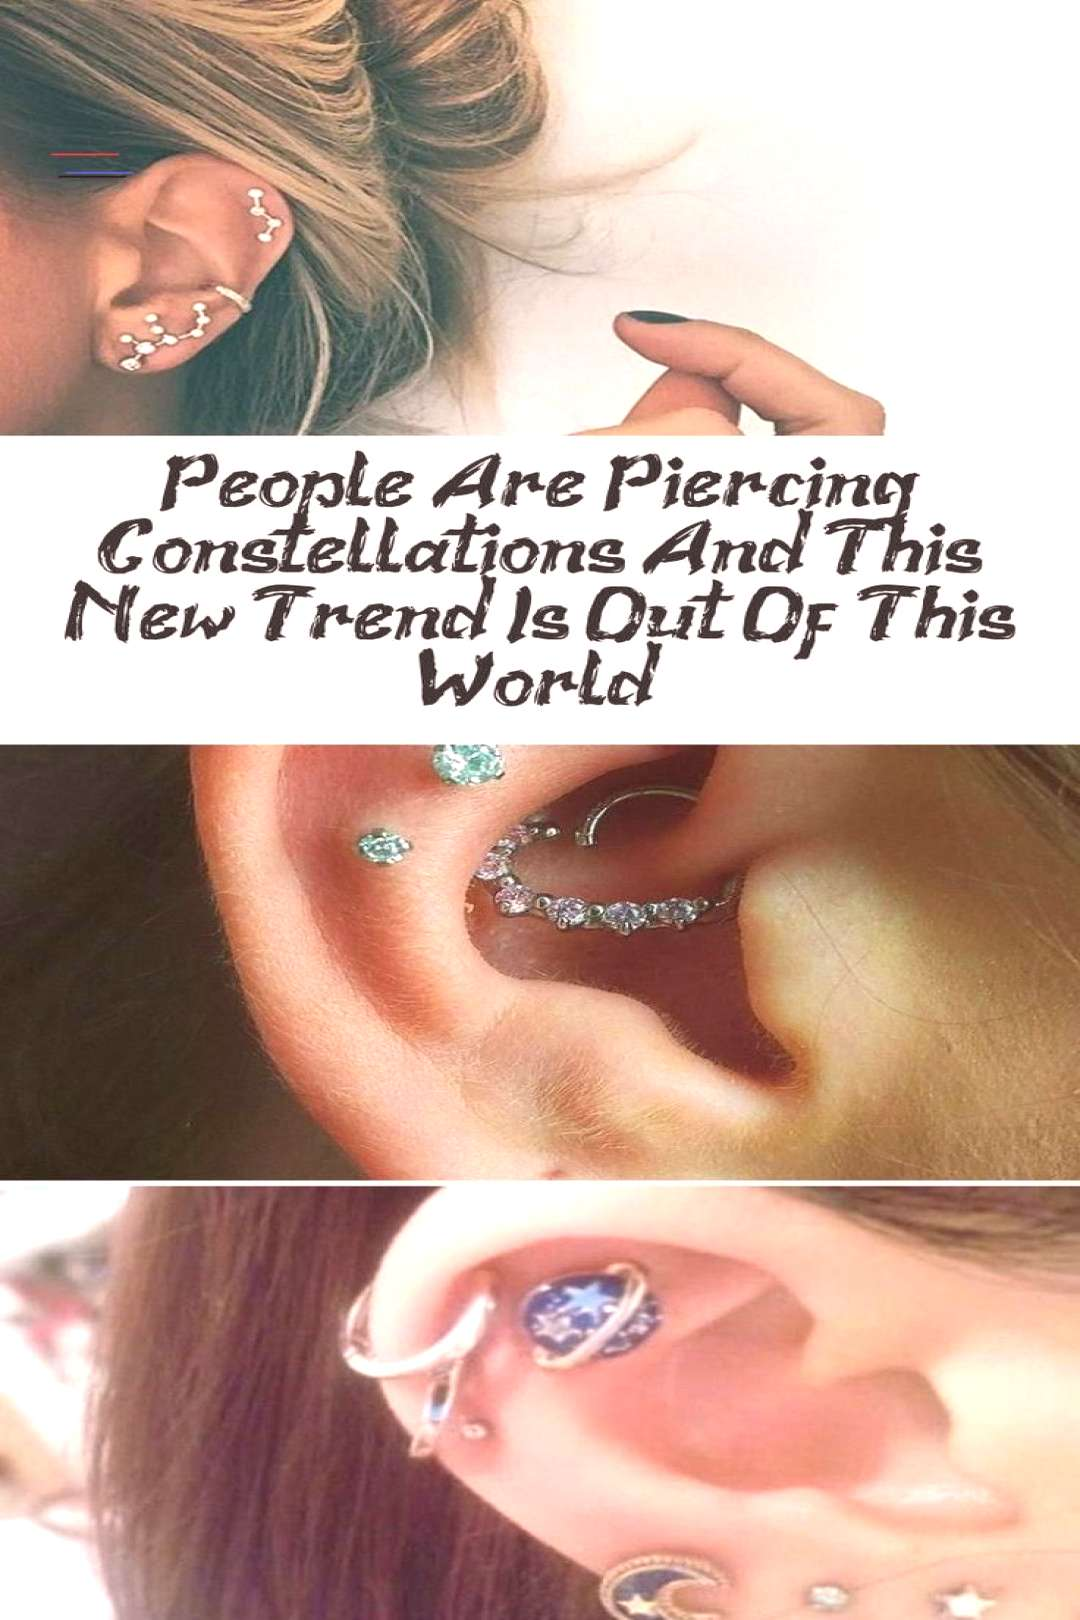 People Are Piercing Constellations And This New Trend Is Out Of This World - Pie... -